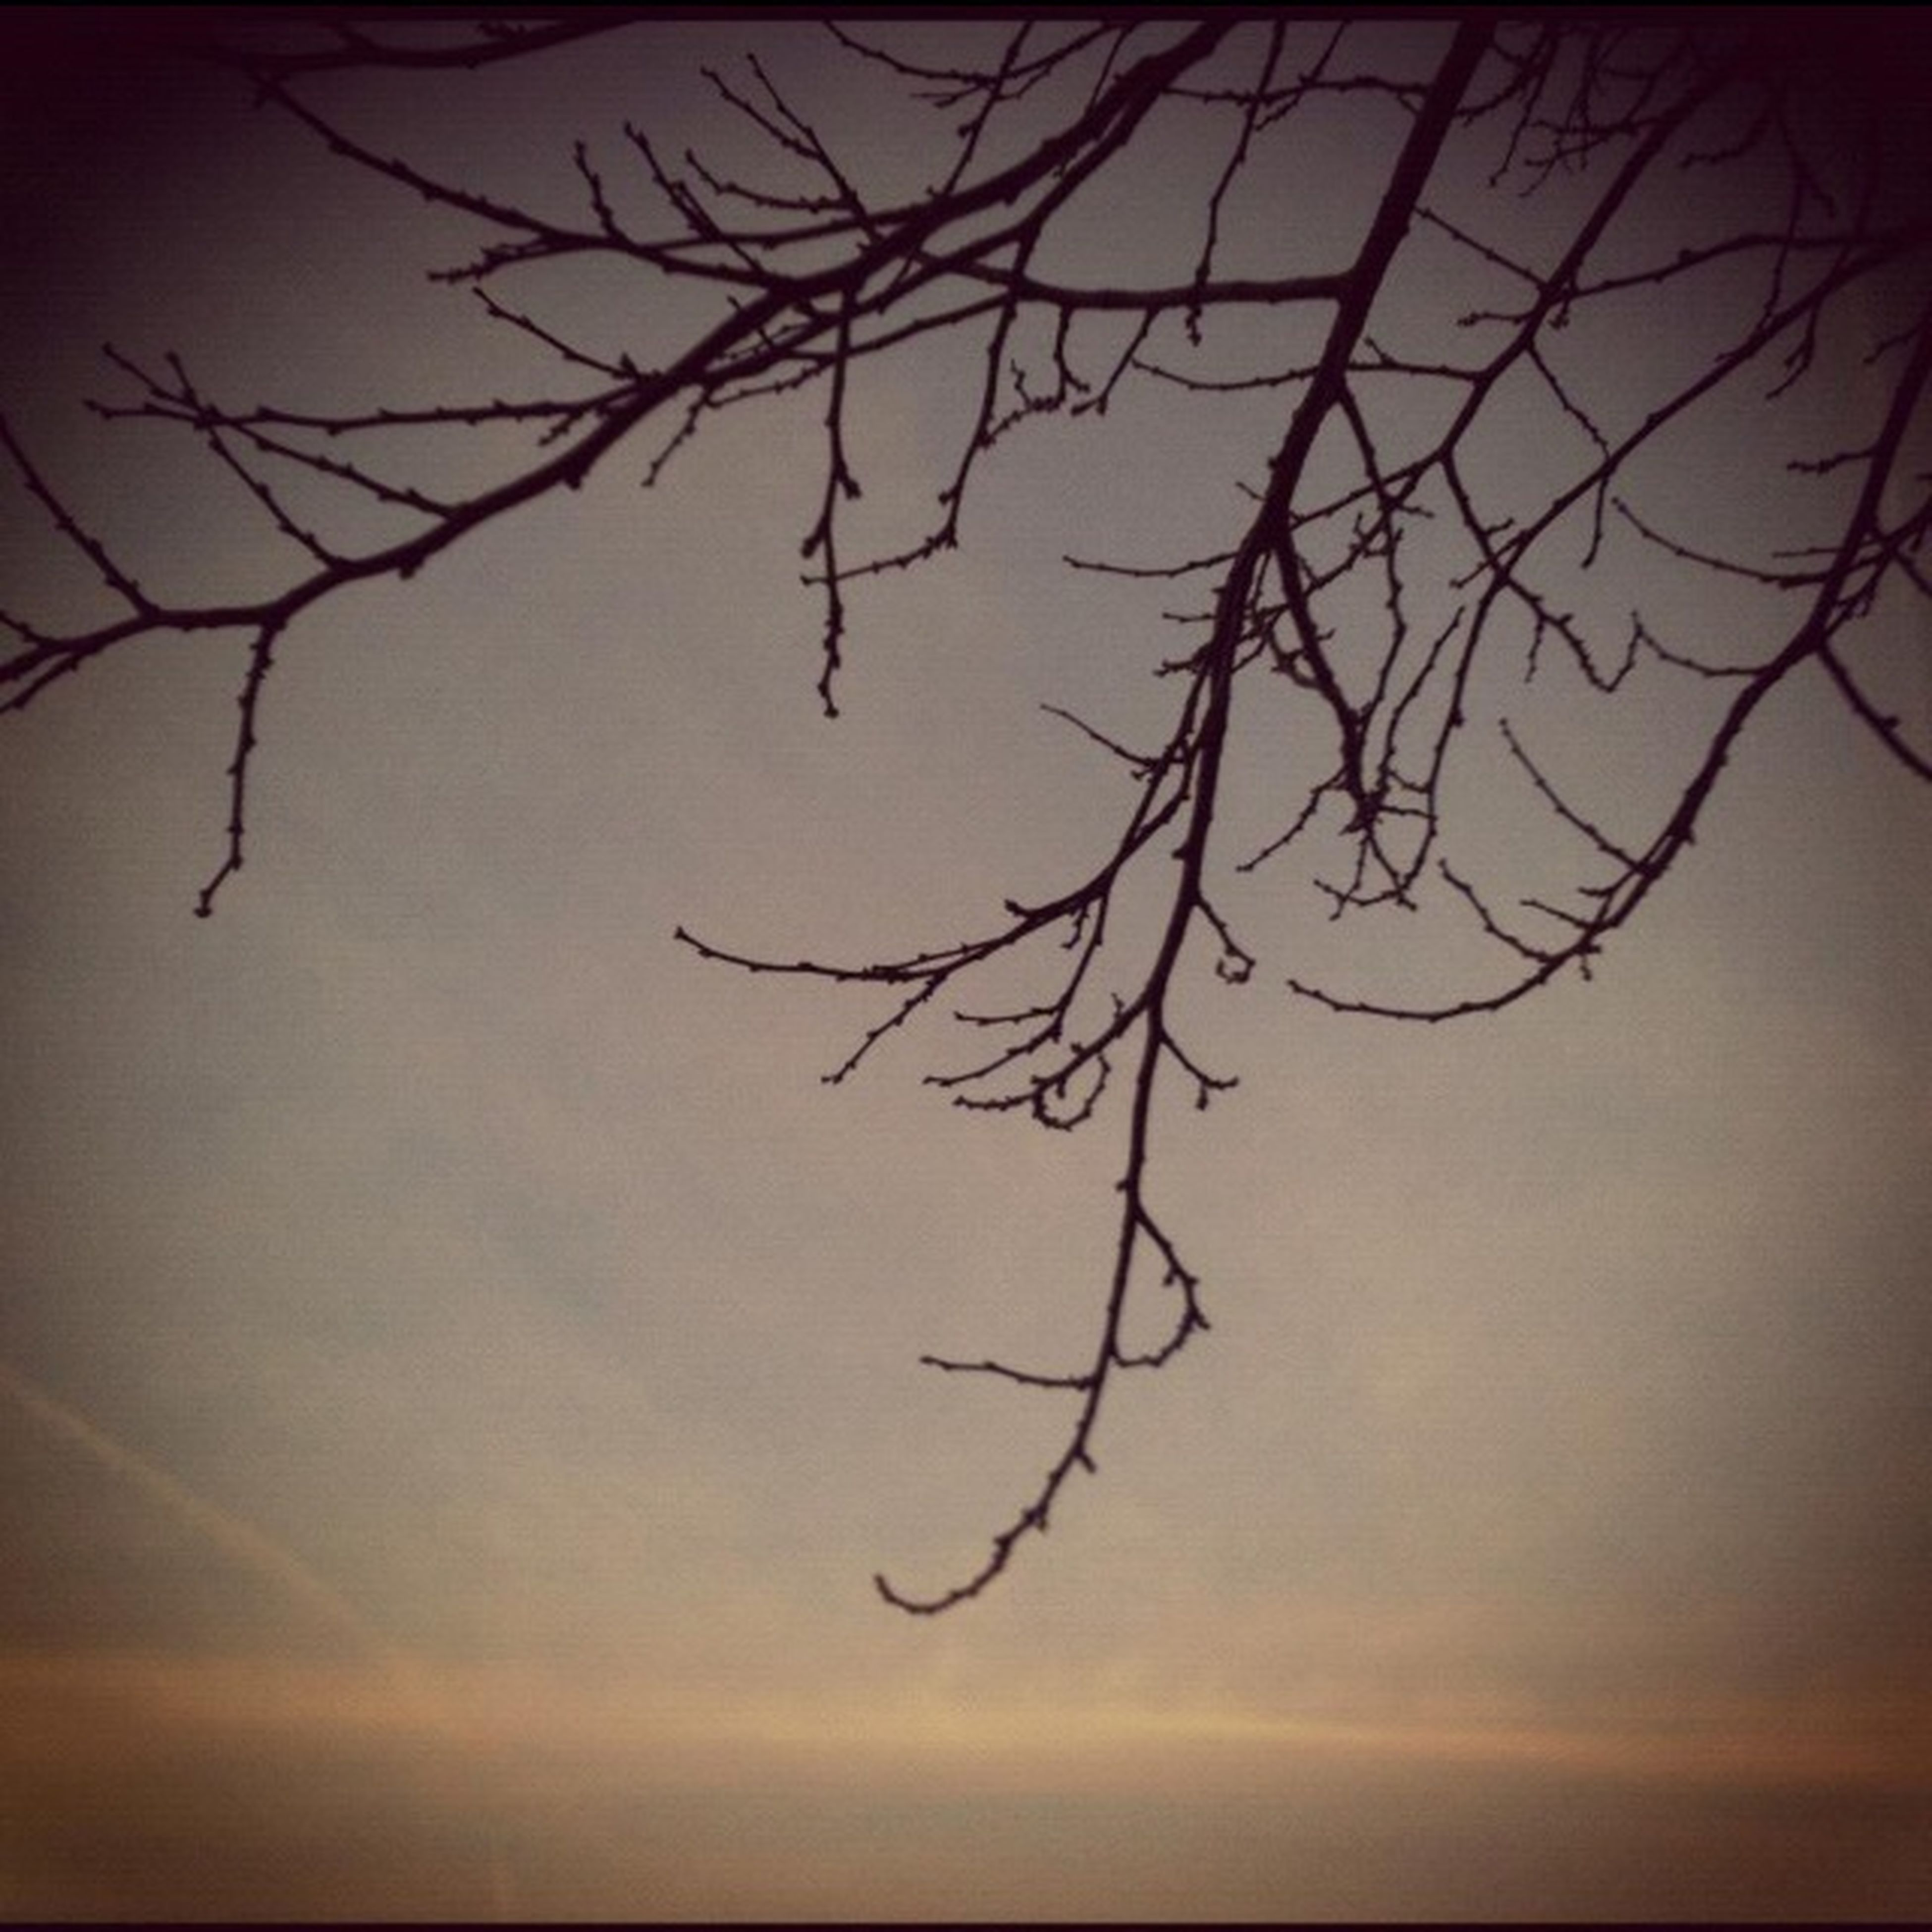 bare tree, branch, tranquility, sunset, sky, nature, silhouette, tranquil scene, scenics, beauty in nature, tree, dusk, idyllic, outdoors, dead plant, no people, growth, twig, low angle view, single tree